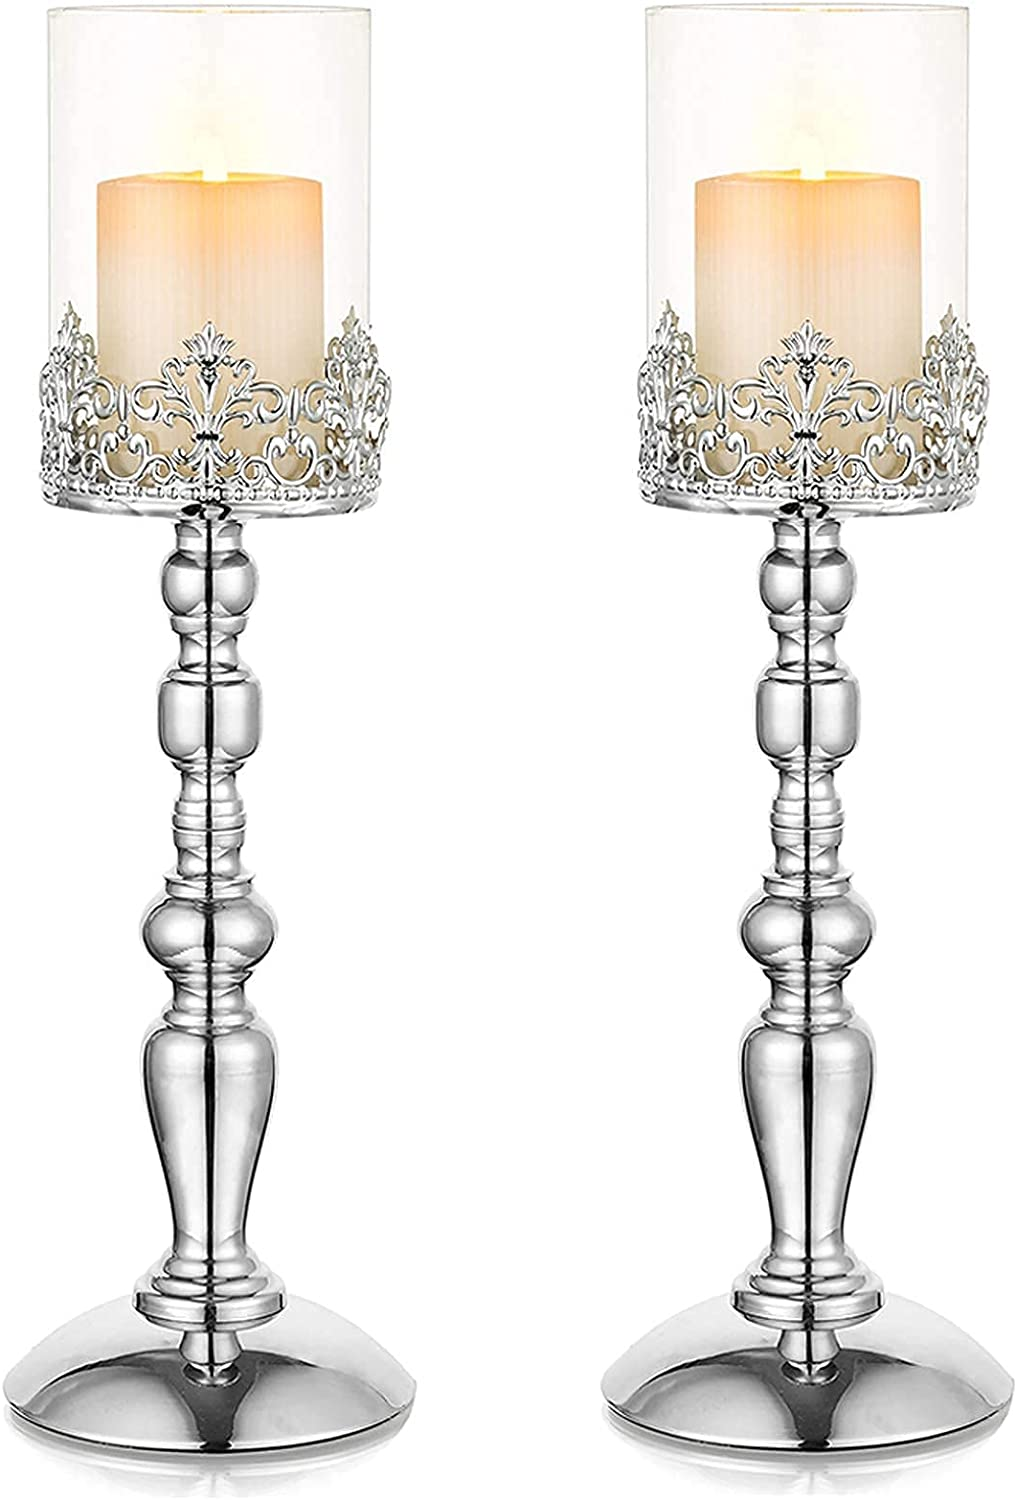 Candlestick Holders Set of 2 Philadelphia Mall Glass Pillar Candle with sold out G